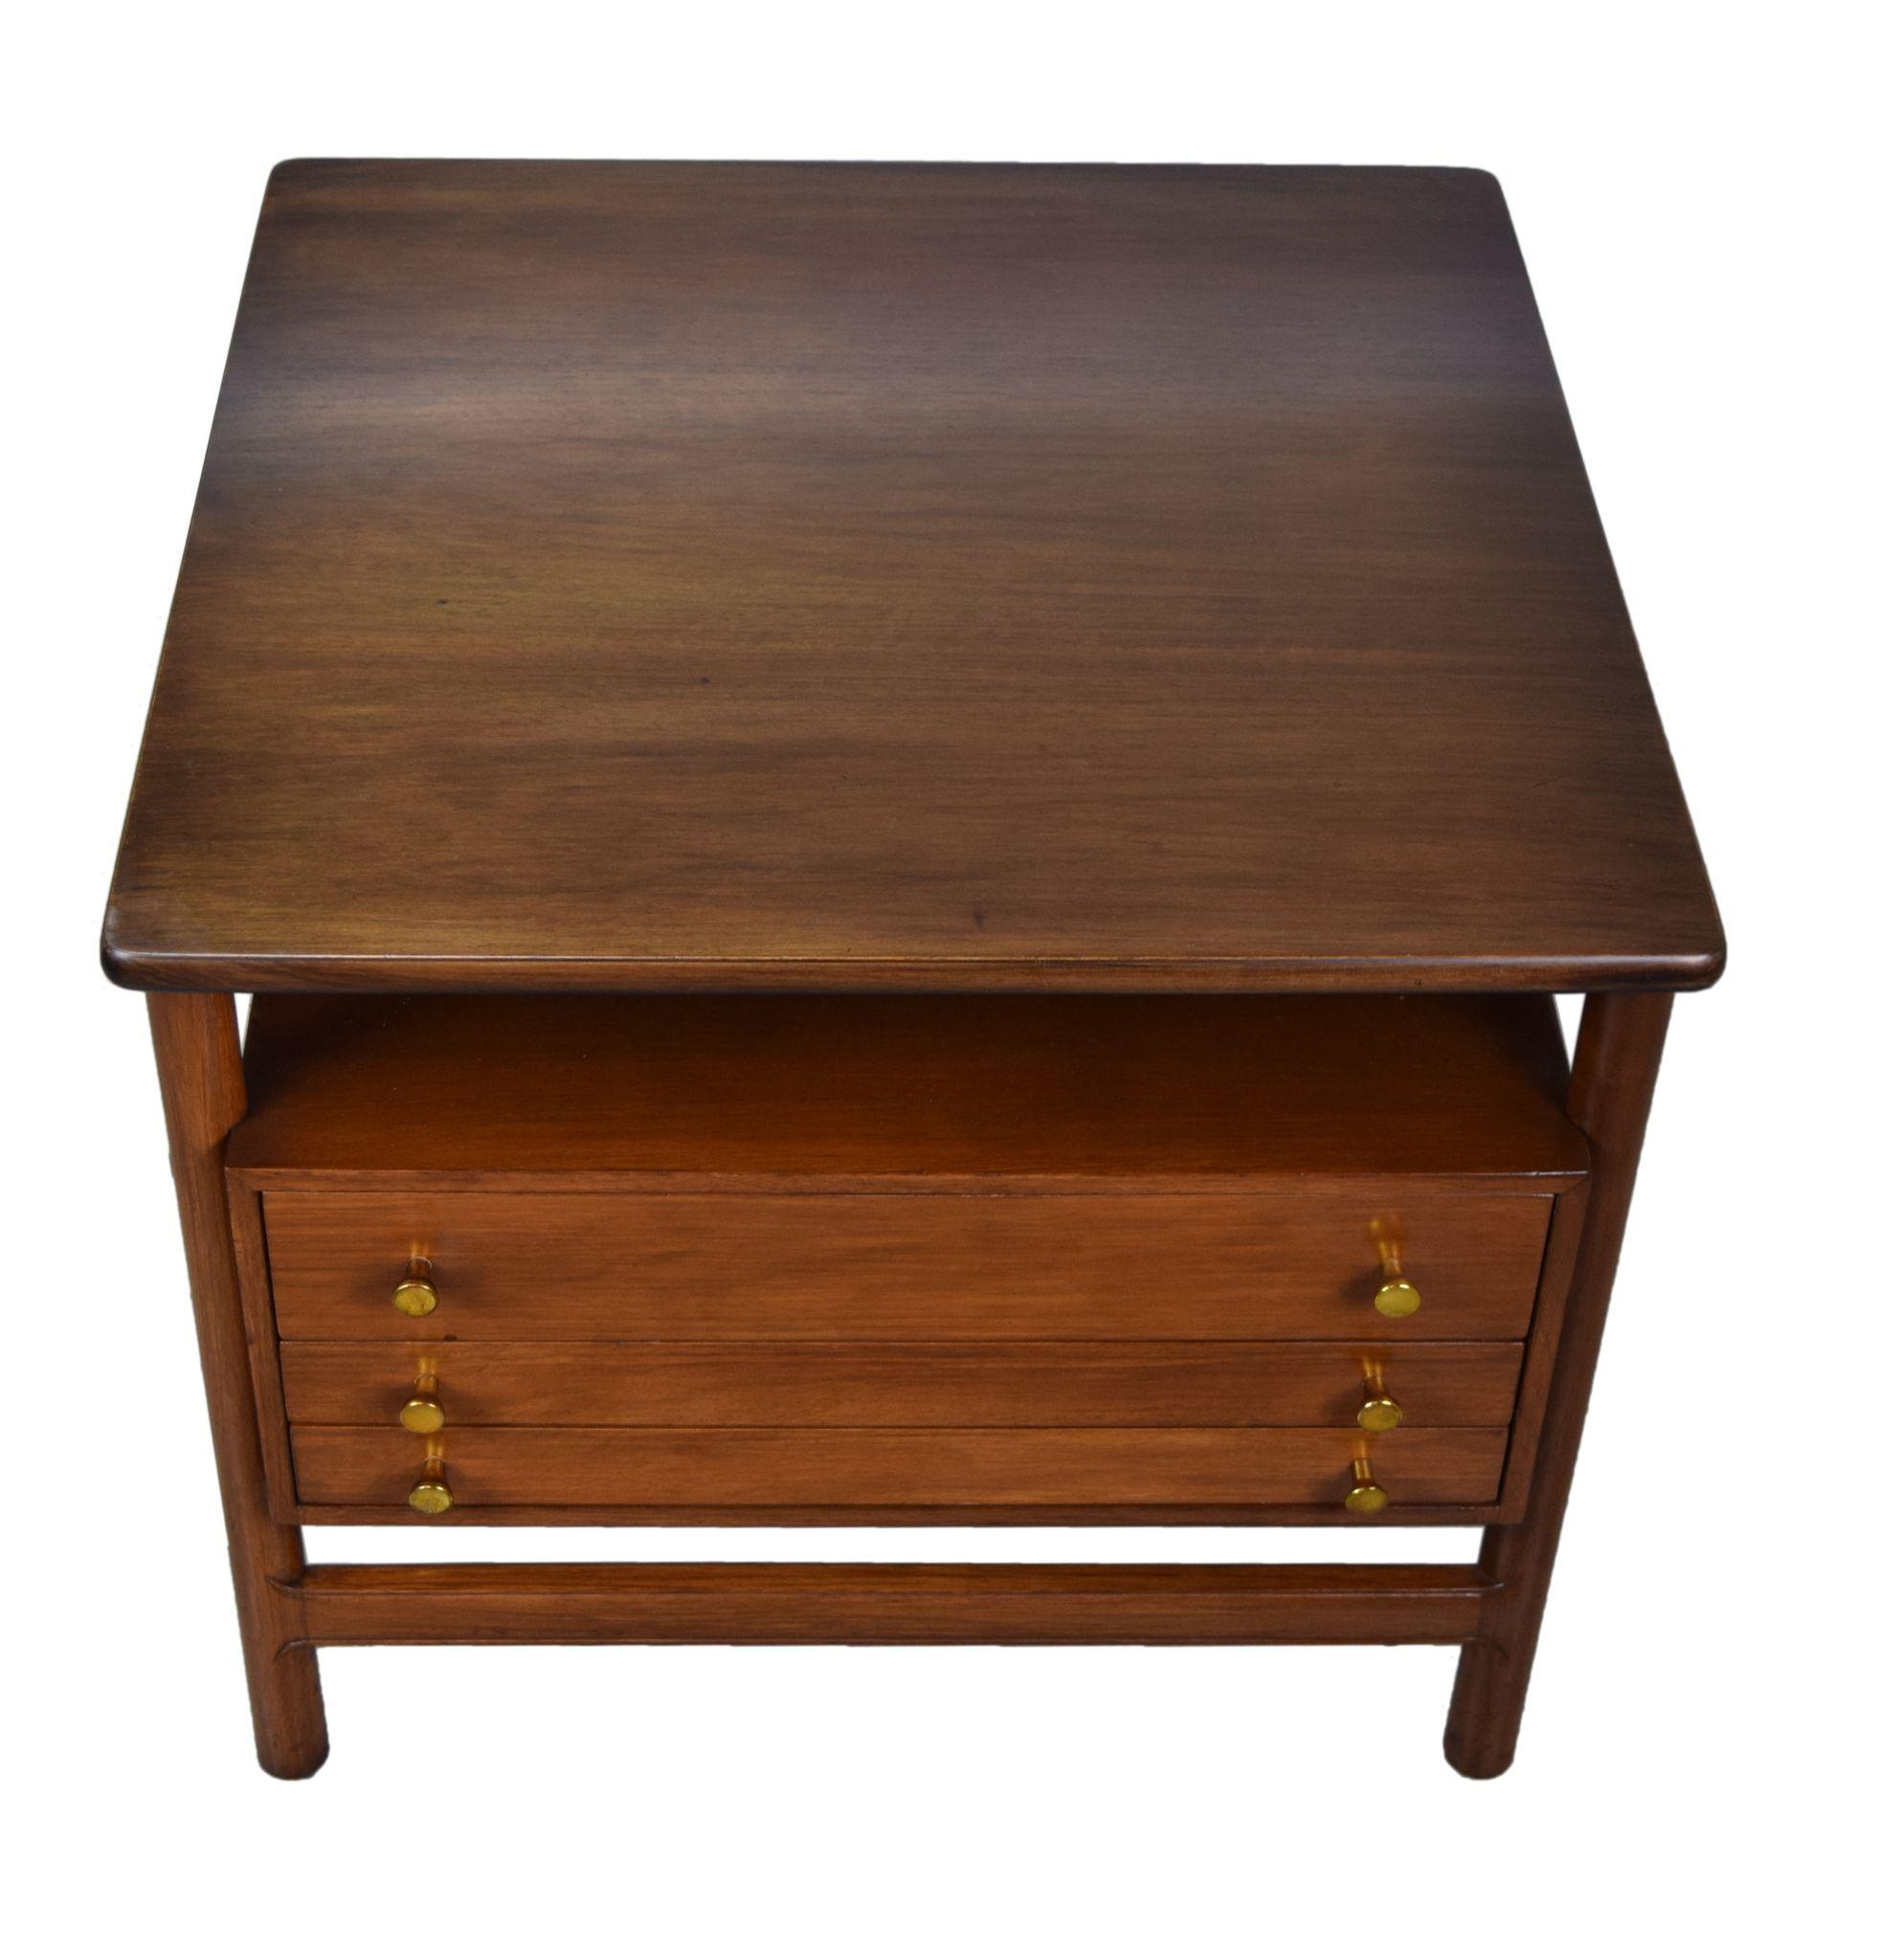 Modern end tables - Roll Over Large Image To Magnify Click Large Image To Zoom